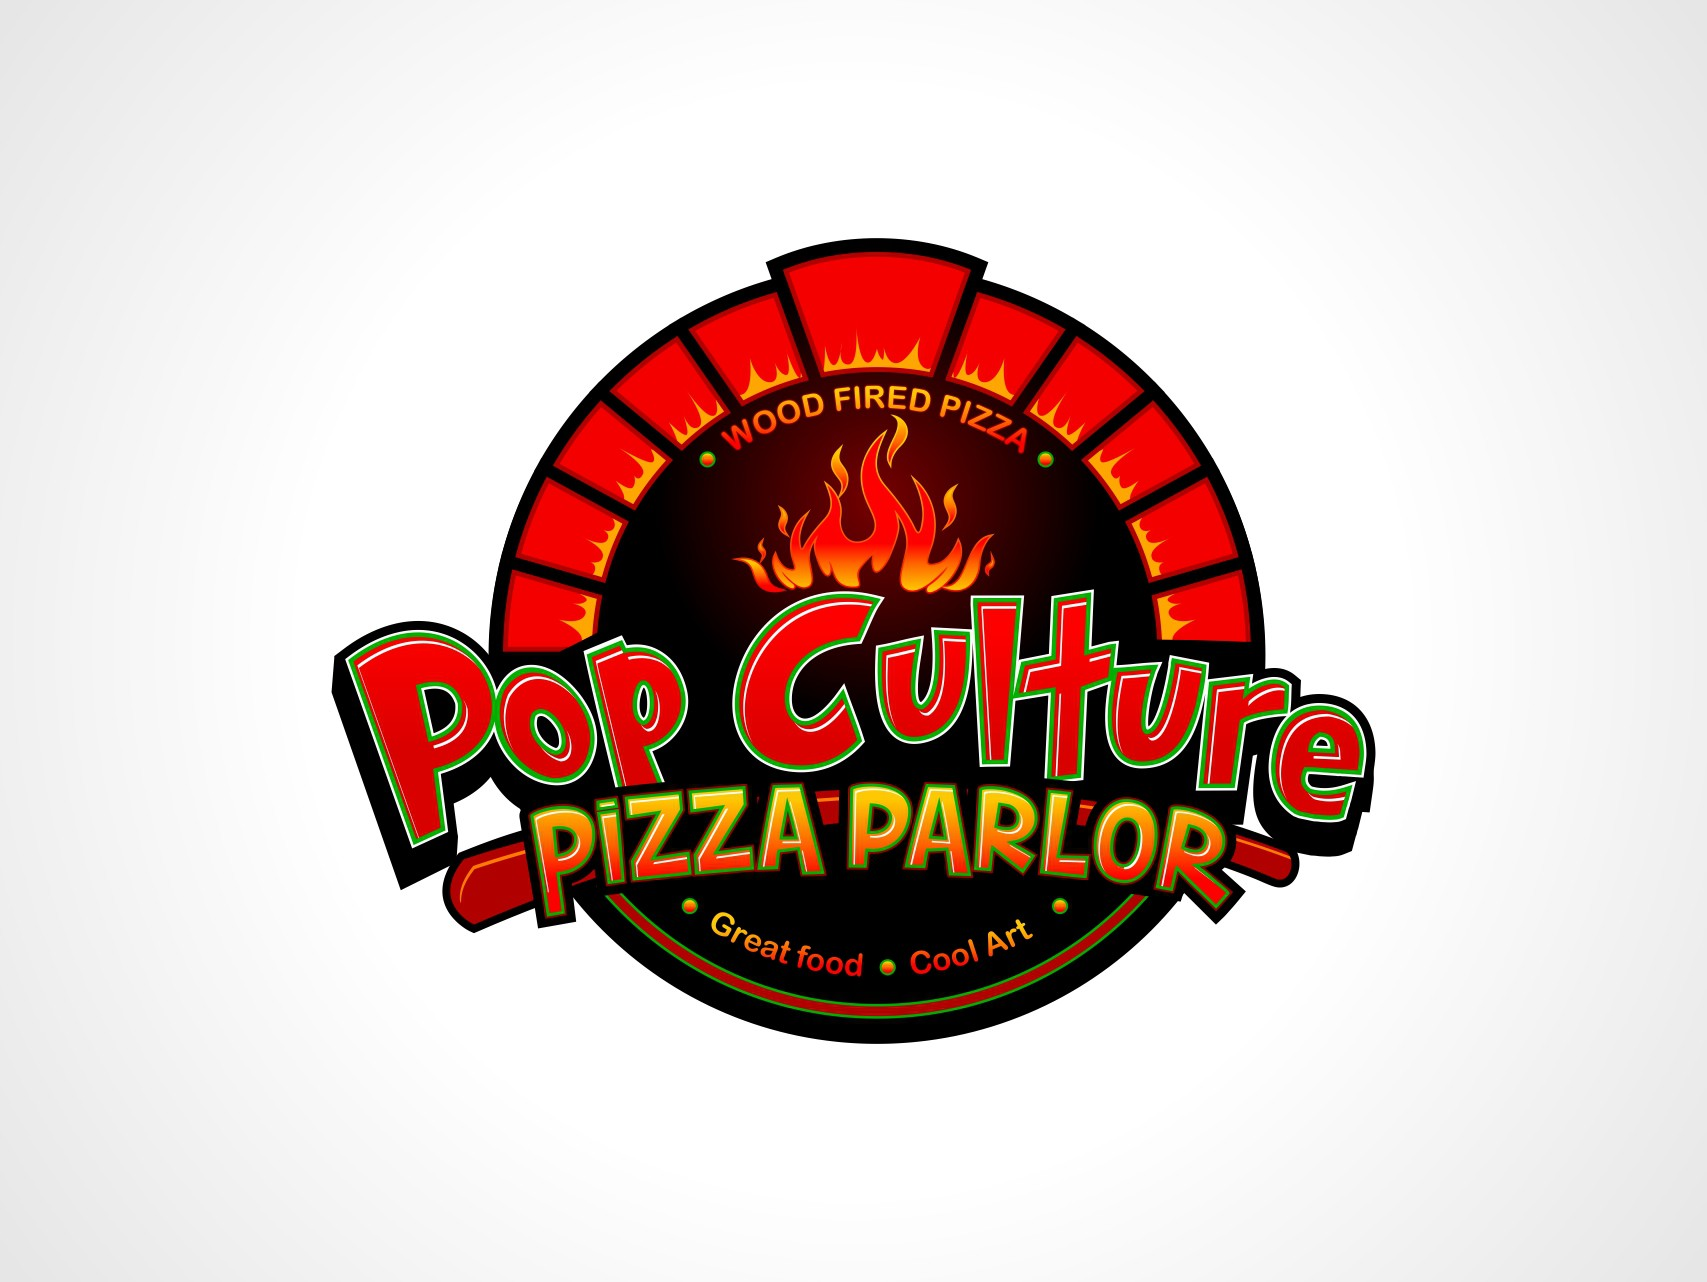 Create Logo for Wood fired pizza parlor and bar that will have pop art and collectible decor